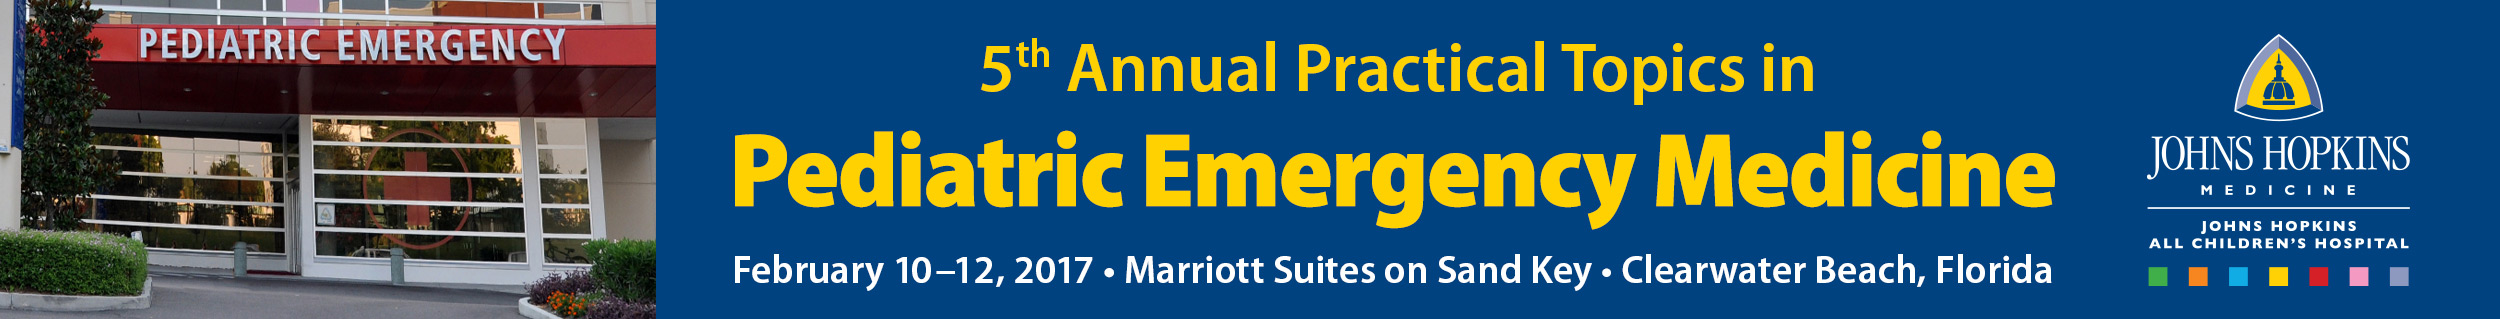 5th Annual Practical Topics in Pediatric Emergency Medicine